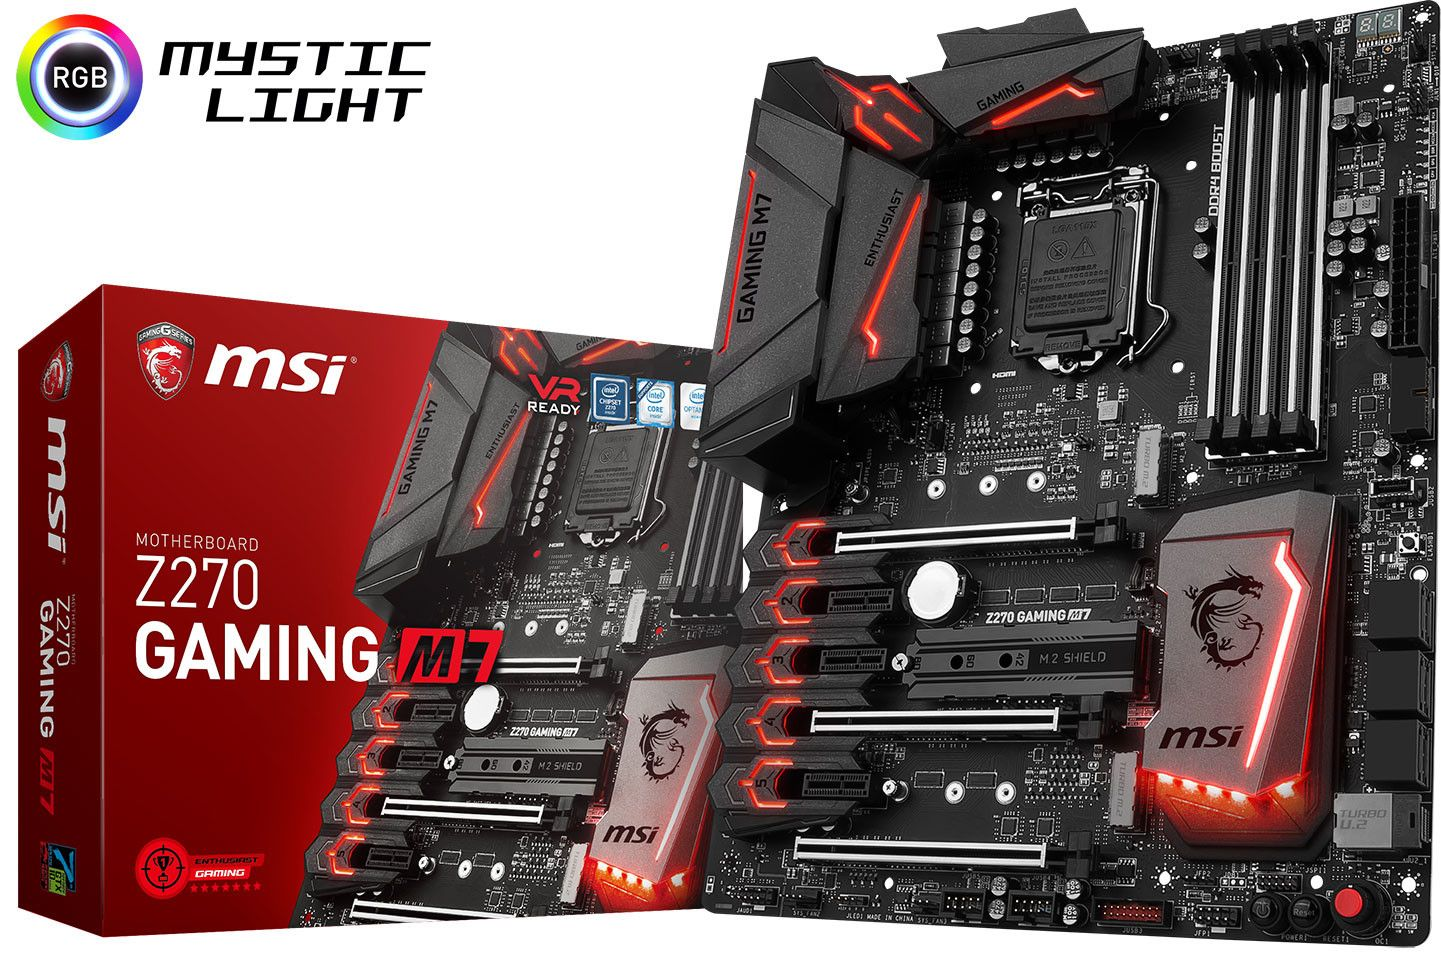 Msi Announces Its Intel 200 Series Motherboard Family Best